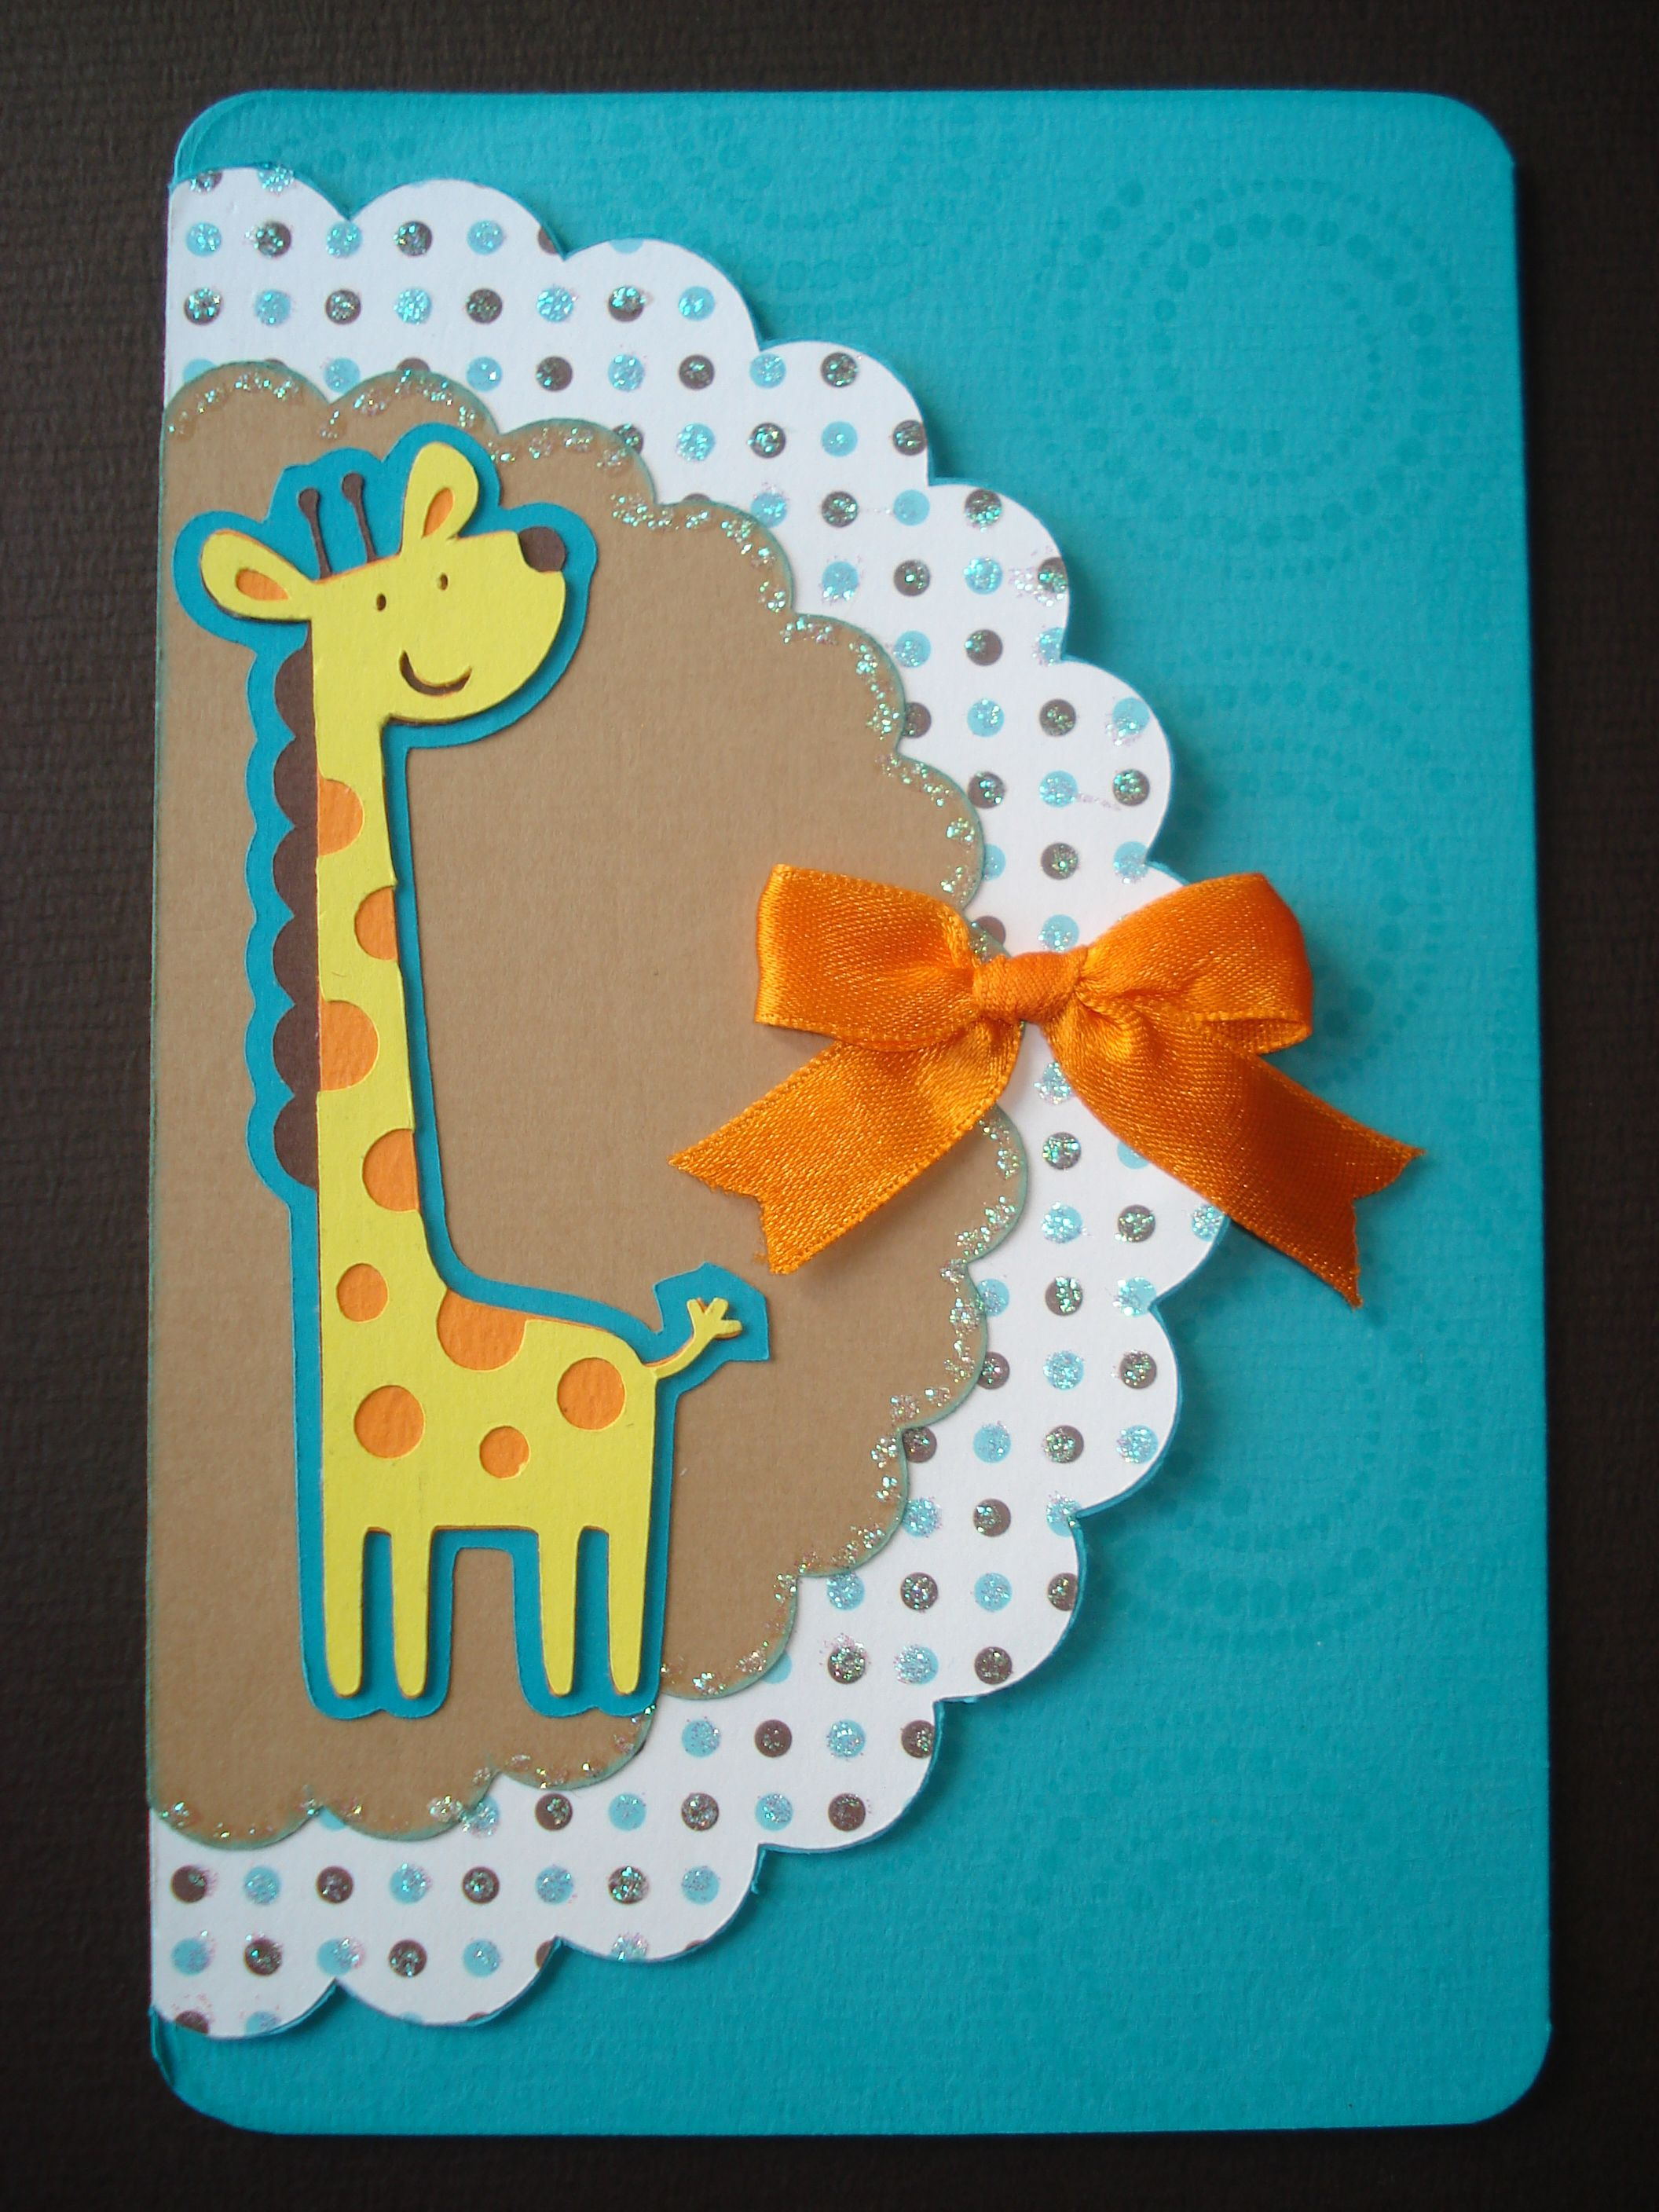 Google Image Result for http://www.thehandmadegreetingcard.com/wp-content/uploads/2012/08/card-making-ideas-card-for-baby-shower-It-s-a-boy-1.jpg